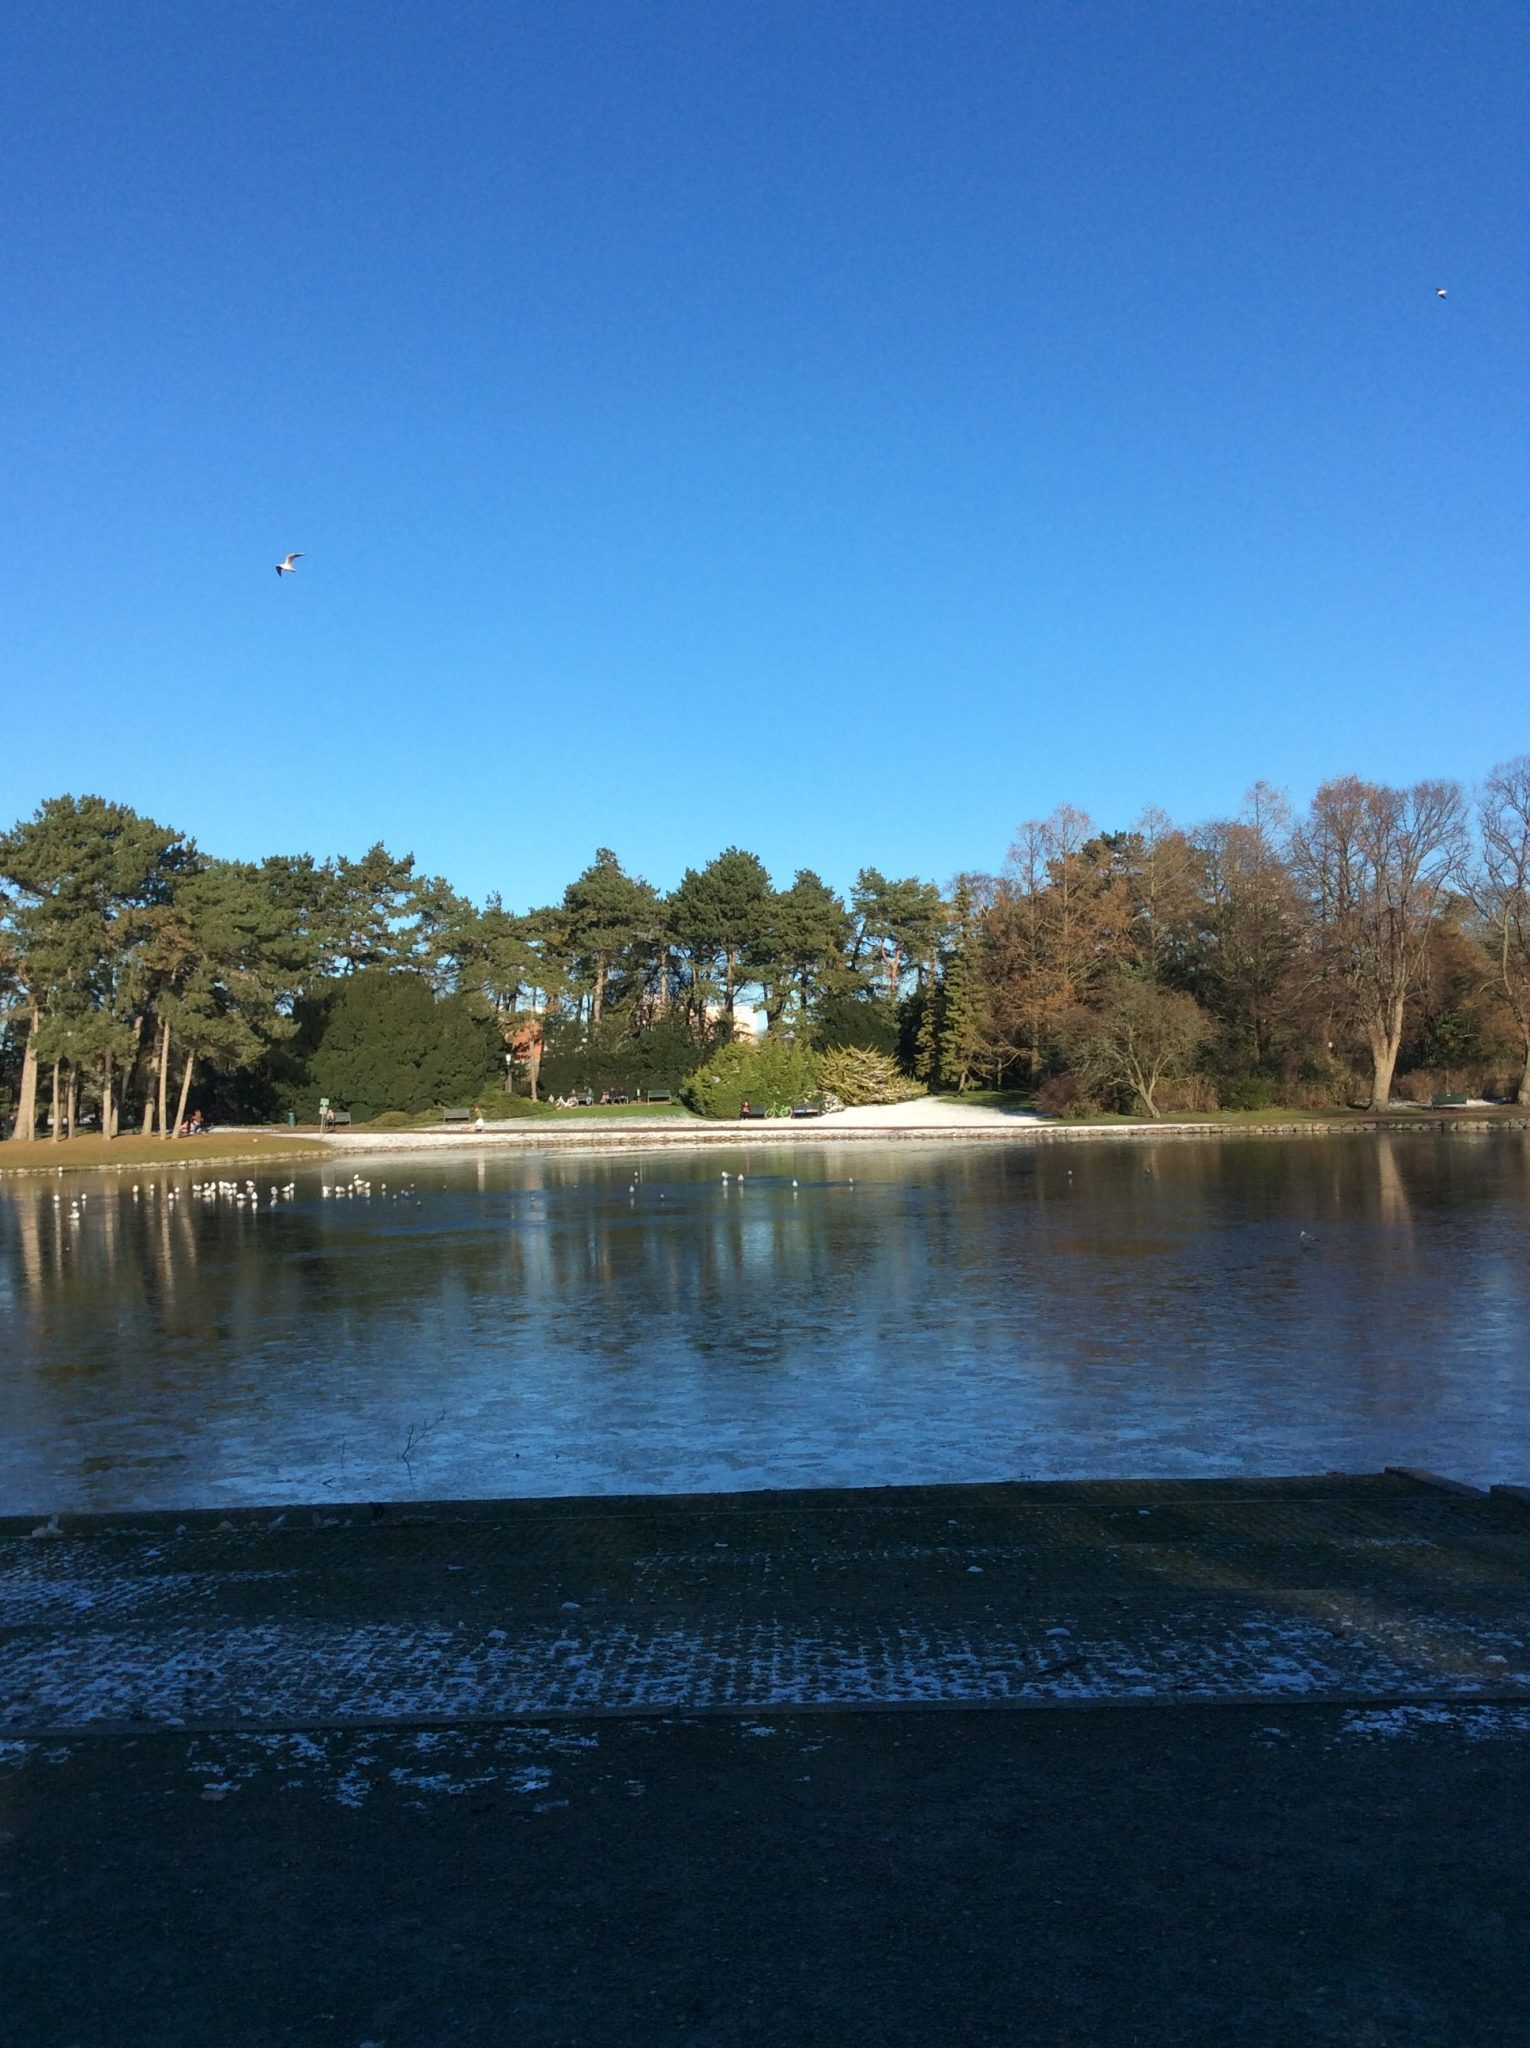 Walking in 19th century: the parks in Malmö